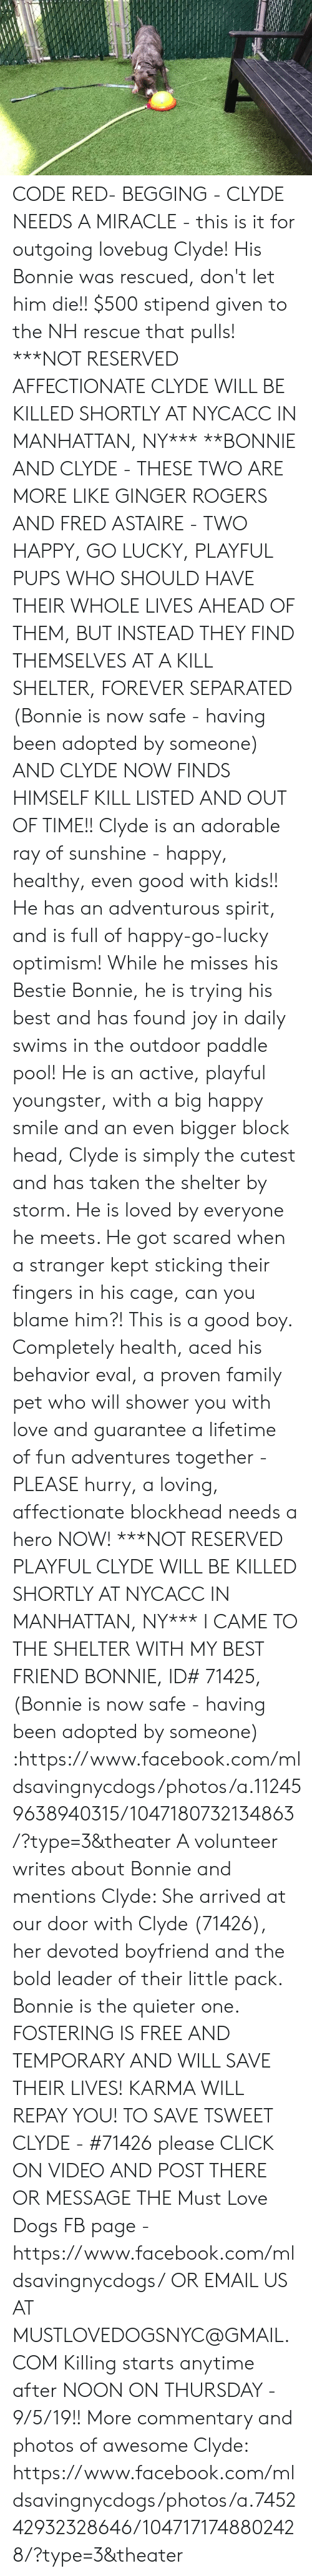 Best Friend, Click, and Dogs: CODE RED- BEGGING - CLYDE NEEDS A MIRACLE - this is it for outgoing lovebug Clyde! His Bonnie was rescued, don't let him die!!  $500 stipend given to the NH rescue that pulls!  ***NOT RESERVED AFFECTIONATE CLYDE WILL BE KILLED SHORTLY AT NYCACC IN MANHATTAN, NY***  **BONNIE AND CLYDE - THESE TWO ARE MORE LIKE GINGER ROGERS AND FRED ASTAIRE - TWO HAPPY, GO LUCKY, PLAYFUL PUPS WHO SHOULD HAVE THEIR WHOLE LIVES AHEAD OF THEM, BUT INSTEAD THEY FIND THEMSELVES AT A KILL SHELTER, FOREVER SEPARATED (Bonnie is now safe - having been adopted by someone) AND CLYDE NOW FINDS HIMSELF KILL LISTED AND OUT OF TIME!!   Clyde is an adorable ray of sunshine - happy, healthy, even good with kids!! He has an adventurous spirit, and is full of happy-go-lucky optimism!  While he misses his Bestie Bonnie, he is trying his best and has found joy in daily swims in the outdoor paddle pool! He is an active, playful youngster, with a big happy smile and an even bigger block head,  Clyde is simply the cutest and has taken the shelter by storm.  He is loved by everyone he meets.  He got scared when a stranger kept sticking their fingers in his cage, can you blame him?! This is a good boy.  Completely health, aced his behavior eval, a proven family pet who will shower you with love and guarantee a lifetime of fun adventures together - PLEASE hurry, a loving, affectionate blockhead needs a hero NOW! ***NOT RESERVED PLAYFUL CLYDE WILL BE KILLED SHORTLY AT NYCACC IN MANHATTAN, NY***  I CAME TO THE SHELTER WITH MY BEST FRIEND BONNIE, ID# 71425, (Bonnie is now safe - having been adopted by someone) :https://www.facebook.com/mldsavingnycdogs/photos/a.112459638940315/1047180732134863/?type=3&theater  A volunteer writes about Bonnie and mentions Clyde:  She arrived at our door with Clyde (71426), her devoted boyfriend and the bold leader of their little pack. Bonnie is the quieter one.  FOSTERING IS FREE AND TEMPORARY AND WILL SAVE THEIR LIVES! KARMA WILL REPAY YOU!  TO SAVE